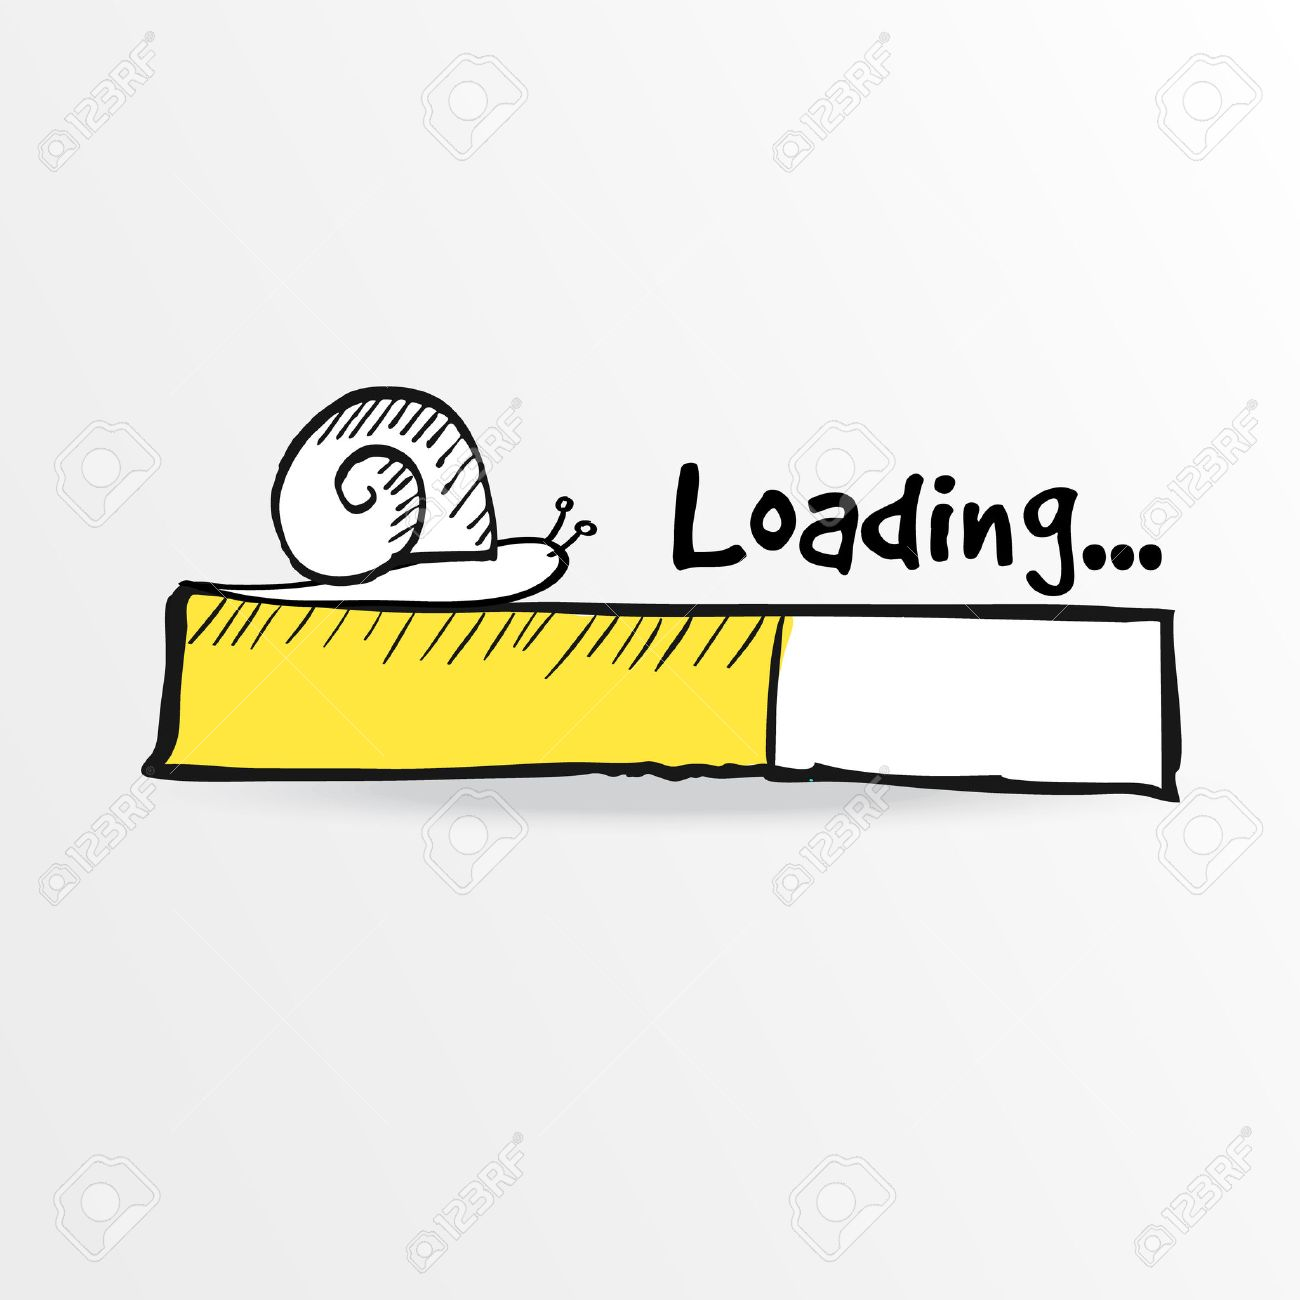 Loading bar with a doodle snail, vector illustration, hand drawn sketch - 33574191